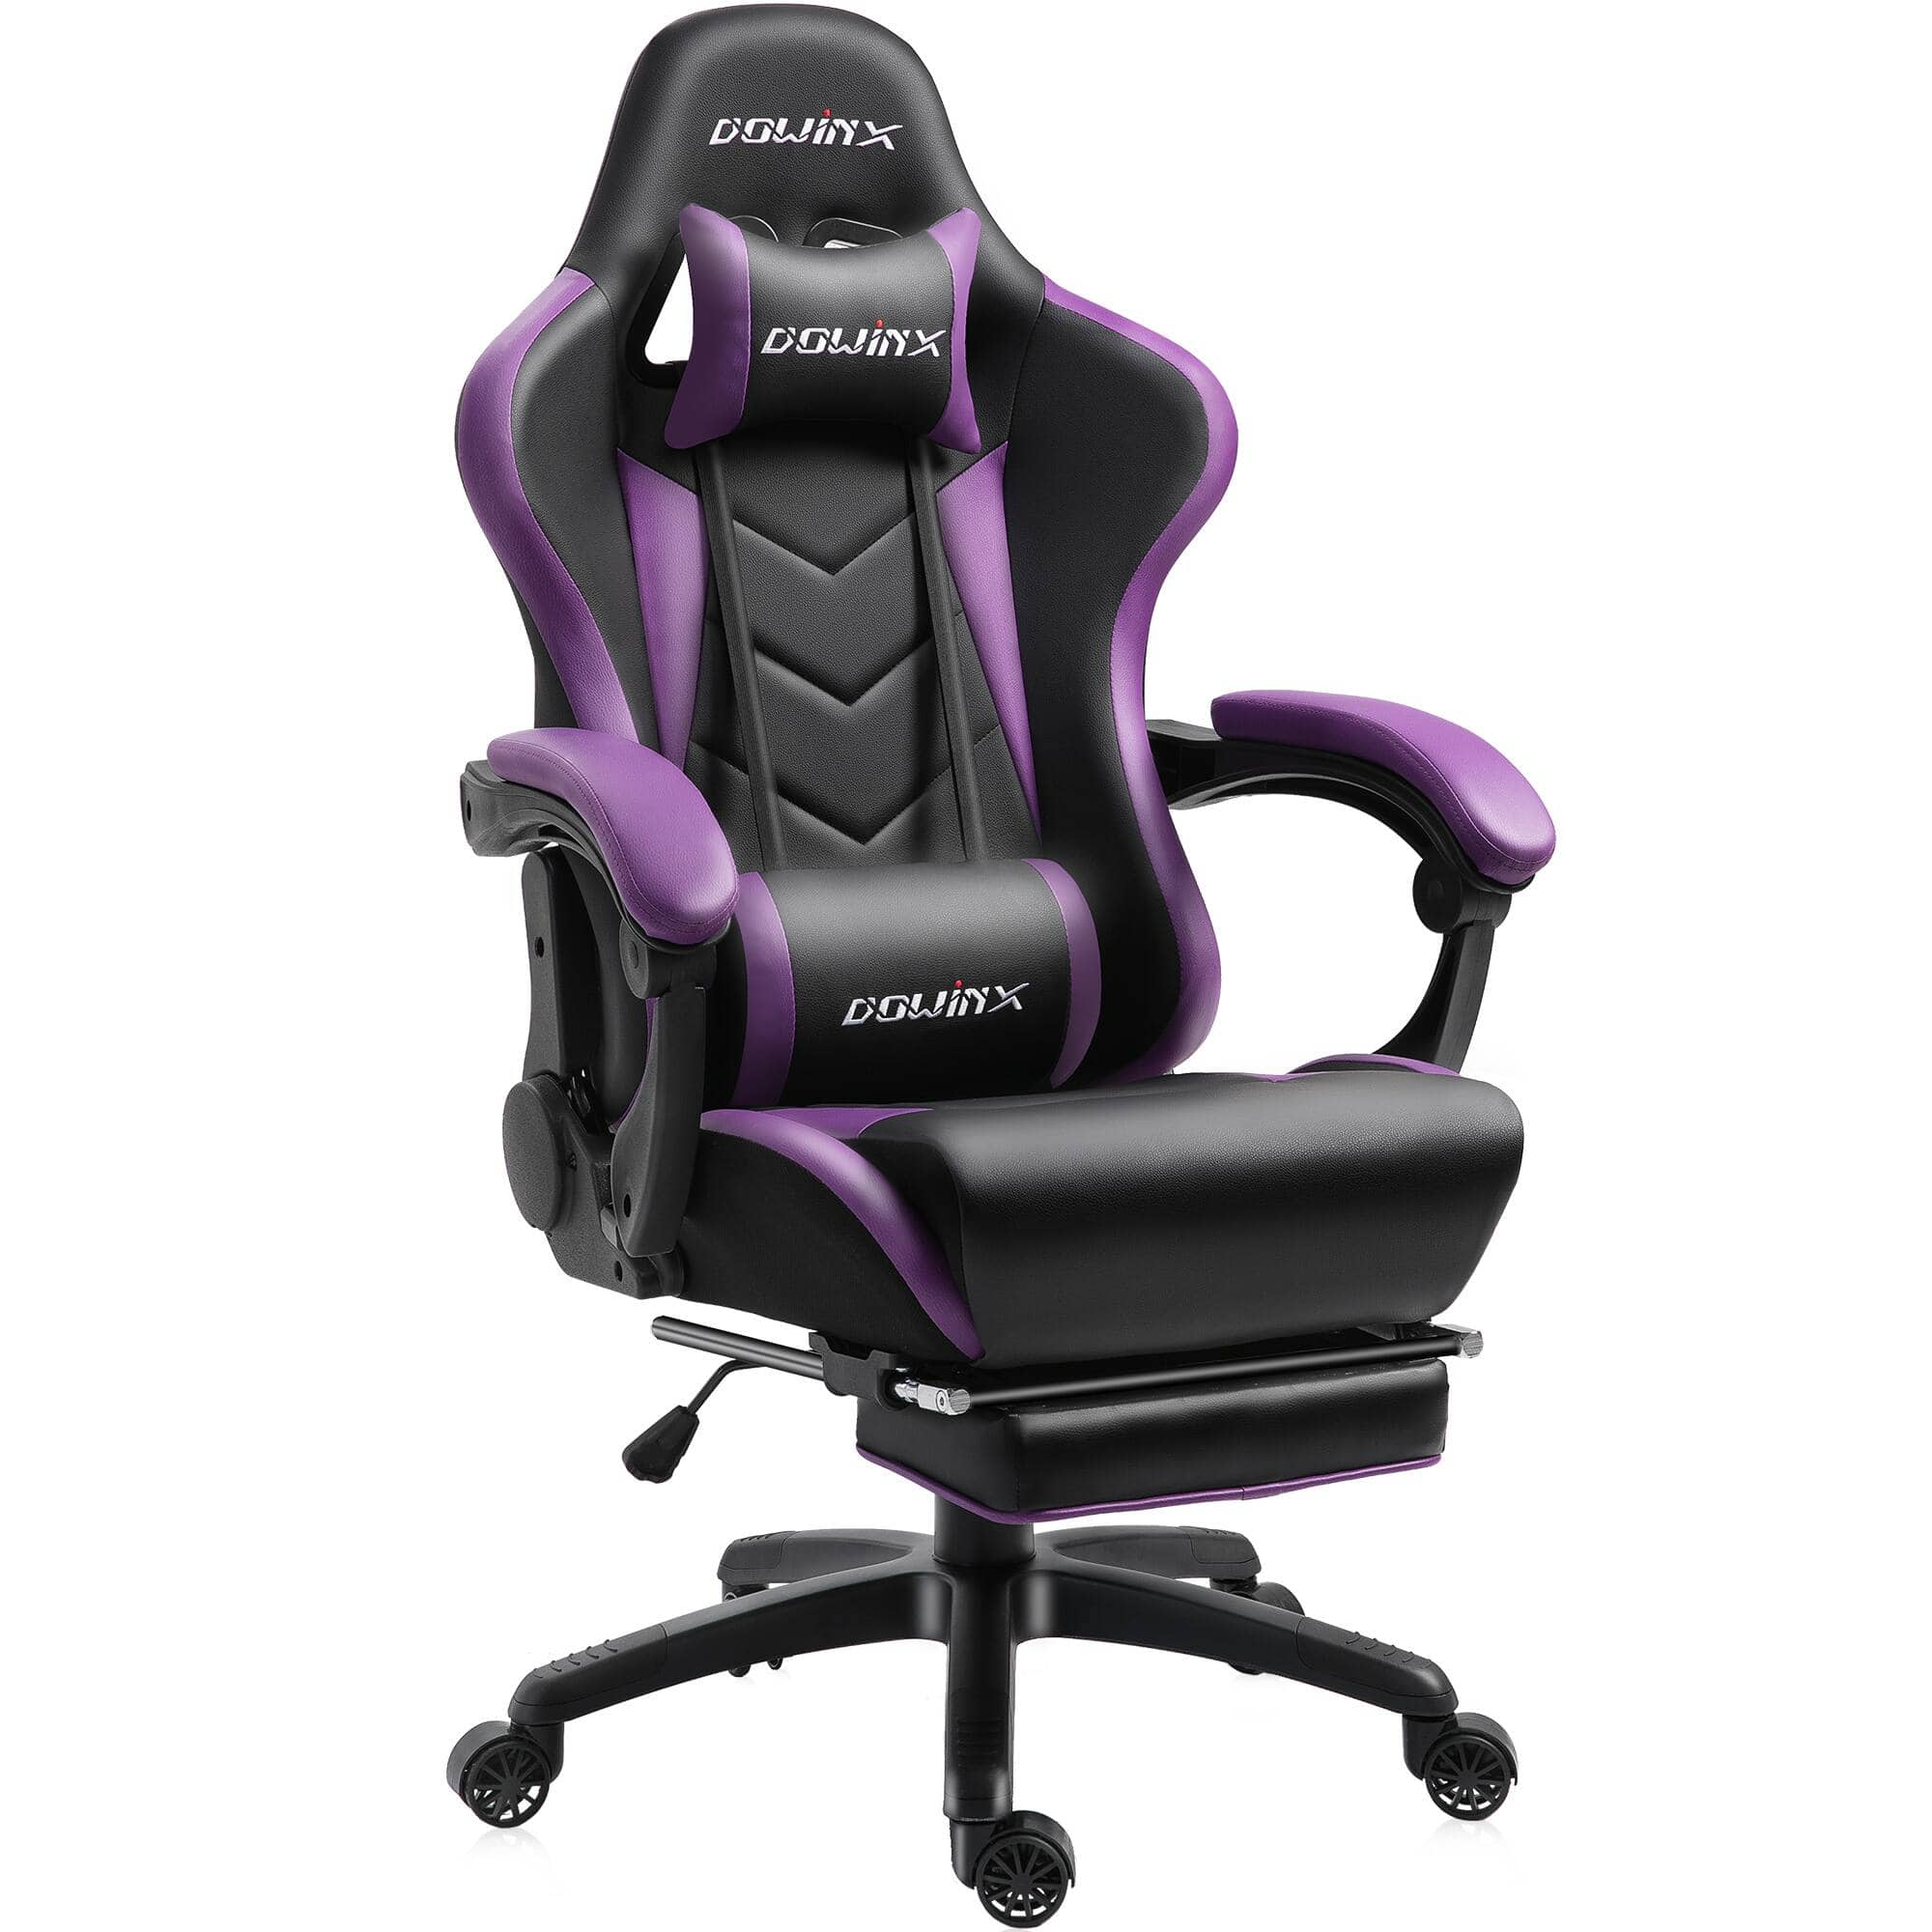 Dowinx Gaming Chair with Massage and Footrest for $149.99 + Free Shipping